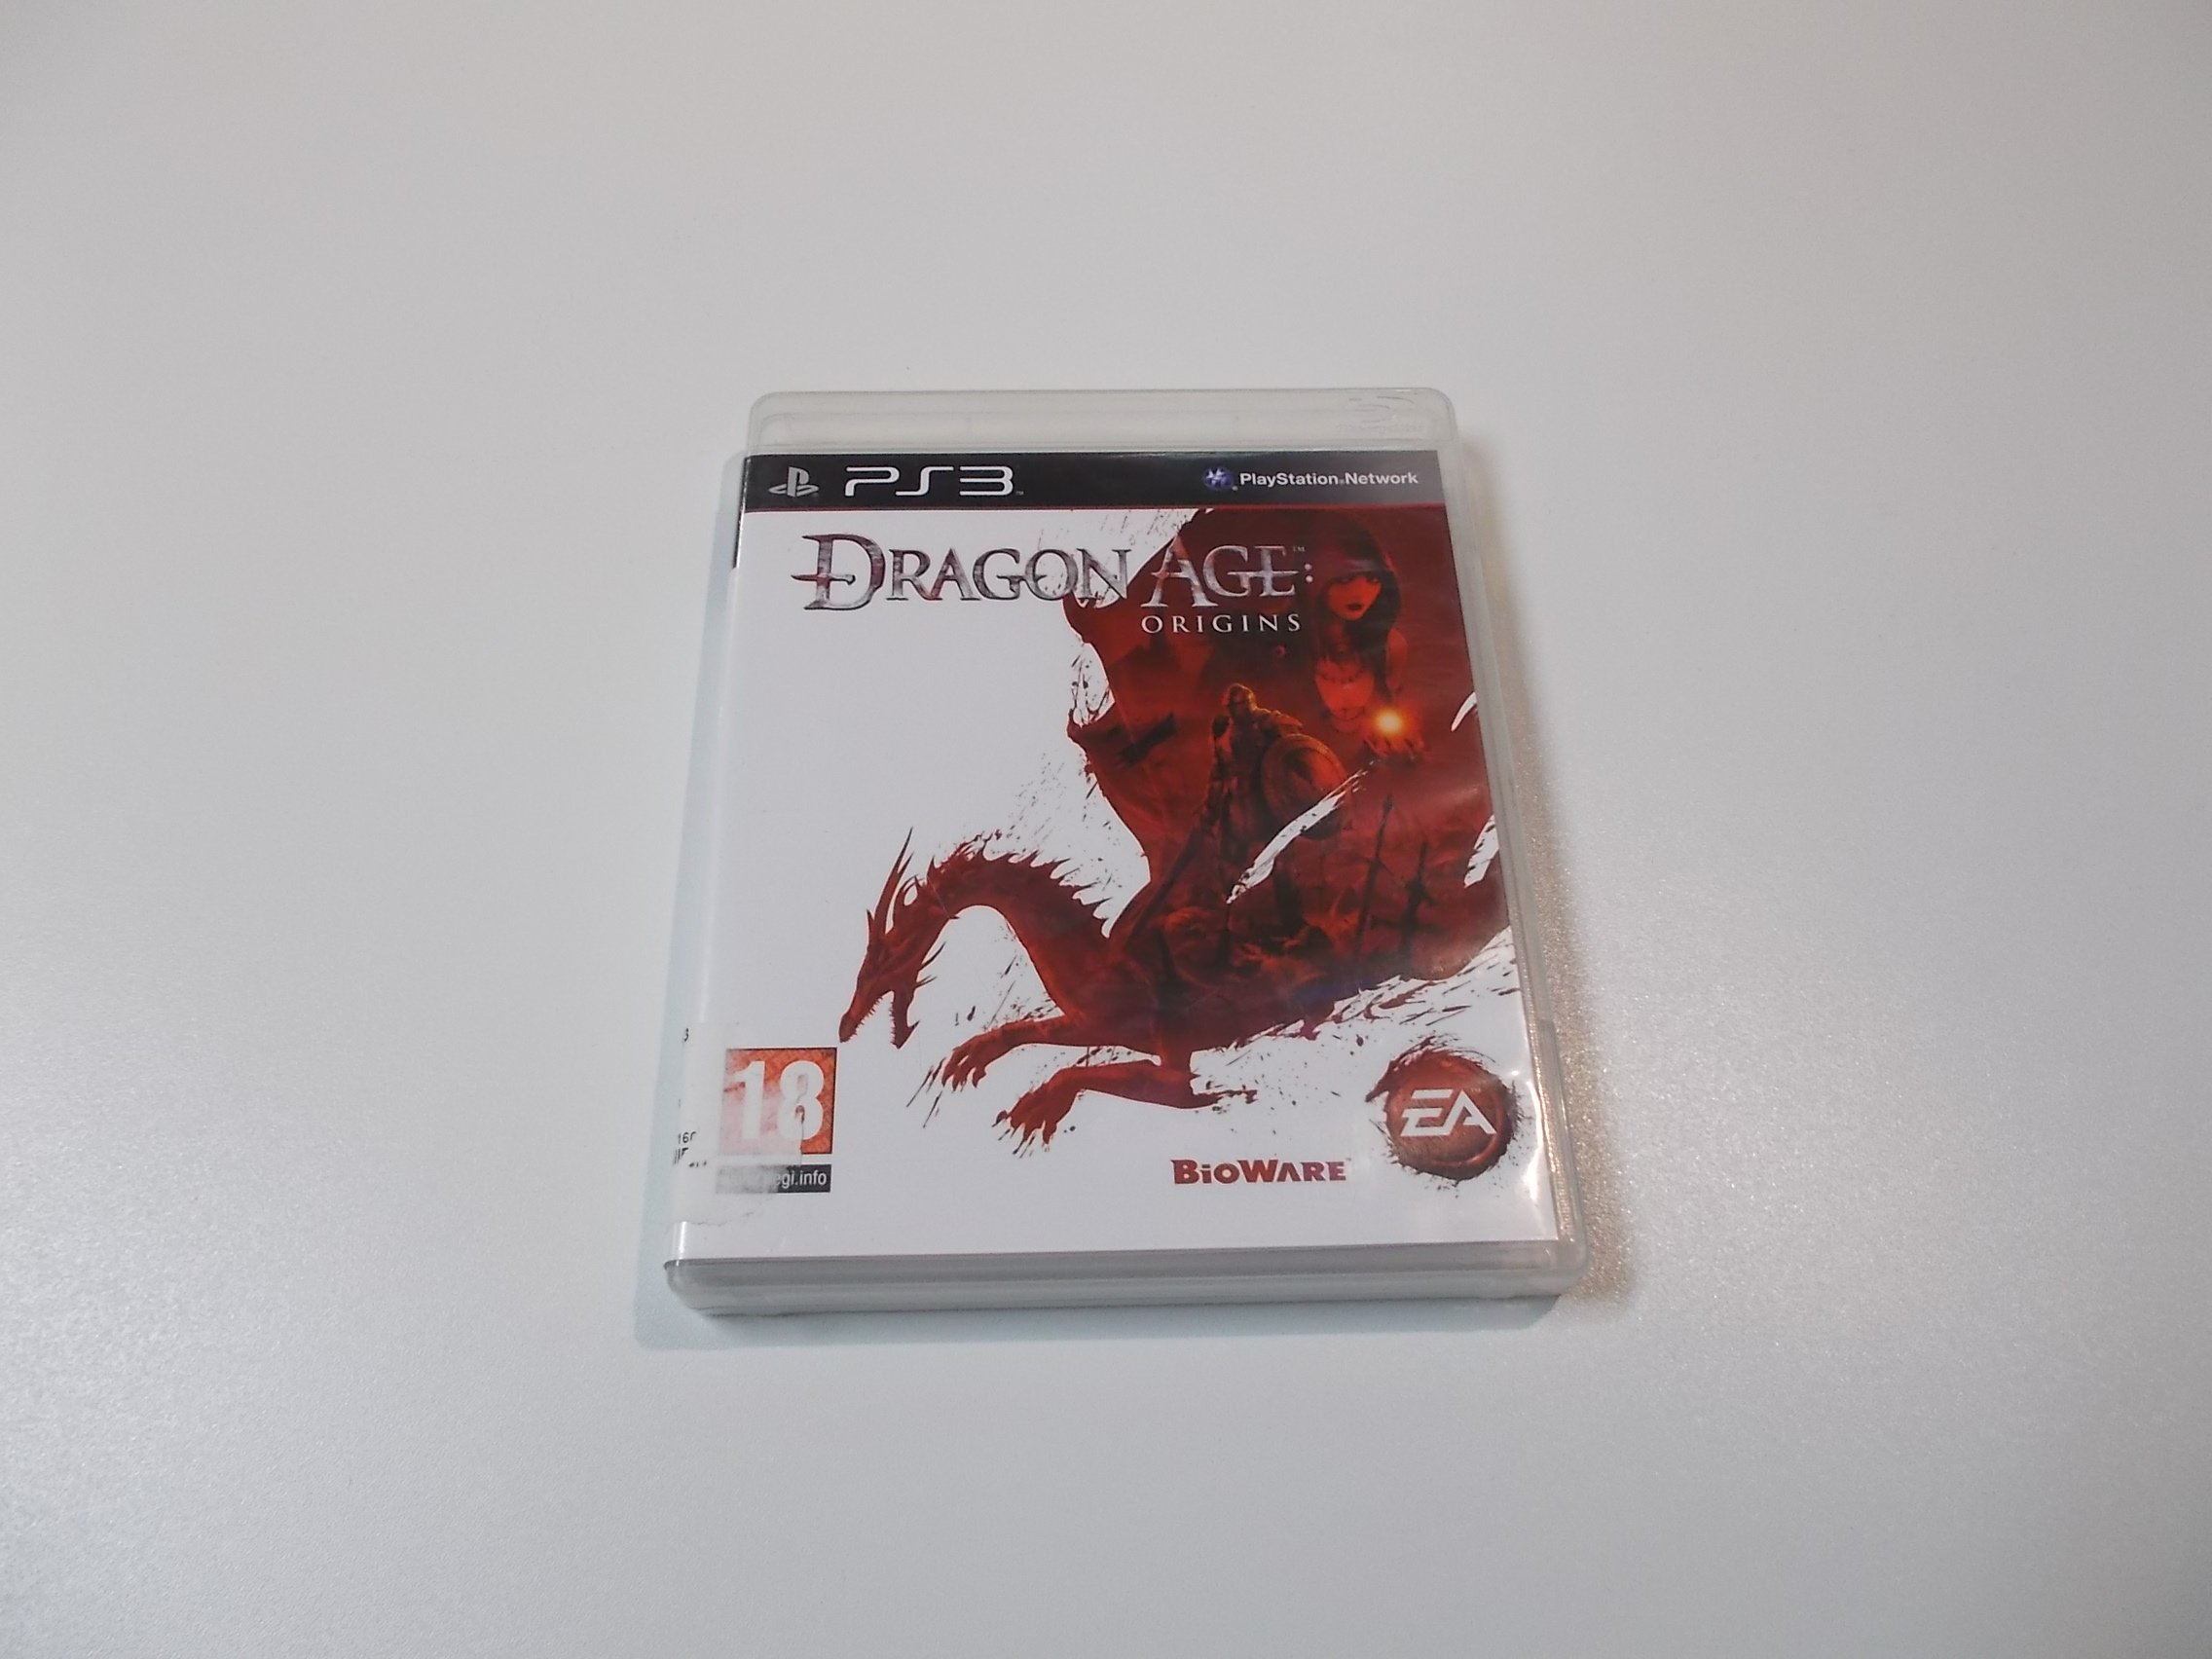 Dragon Age Origins - GRA Ps3 - Sklep